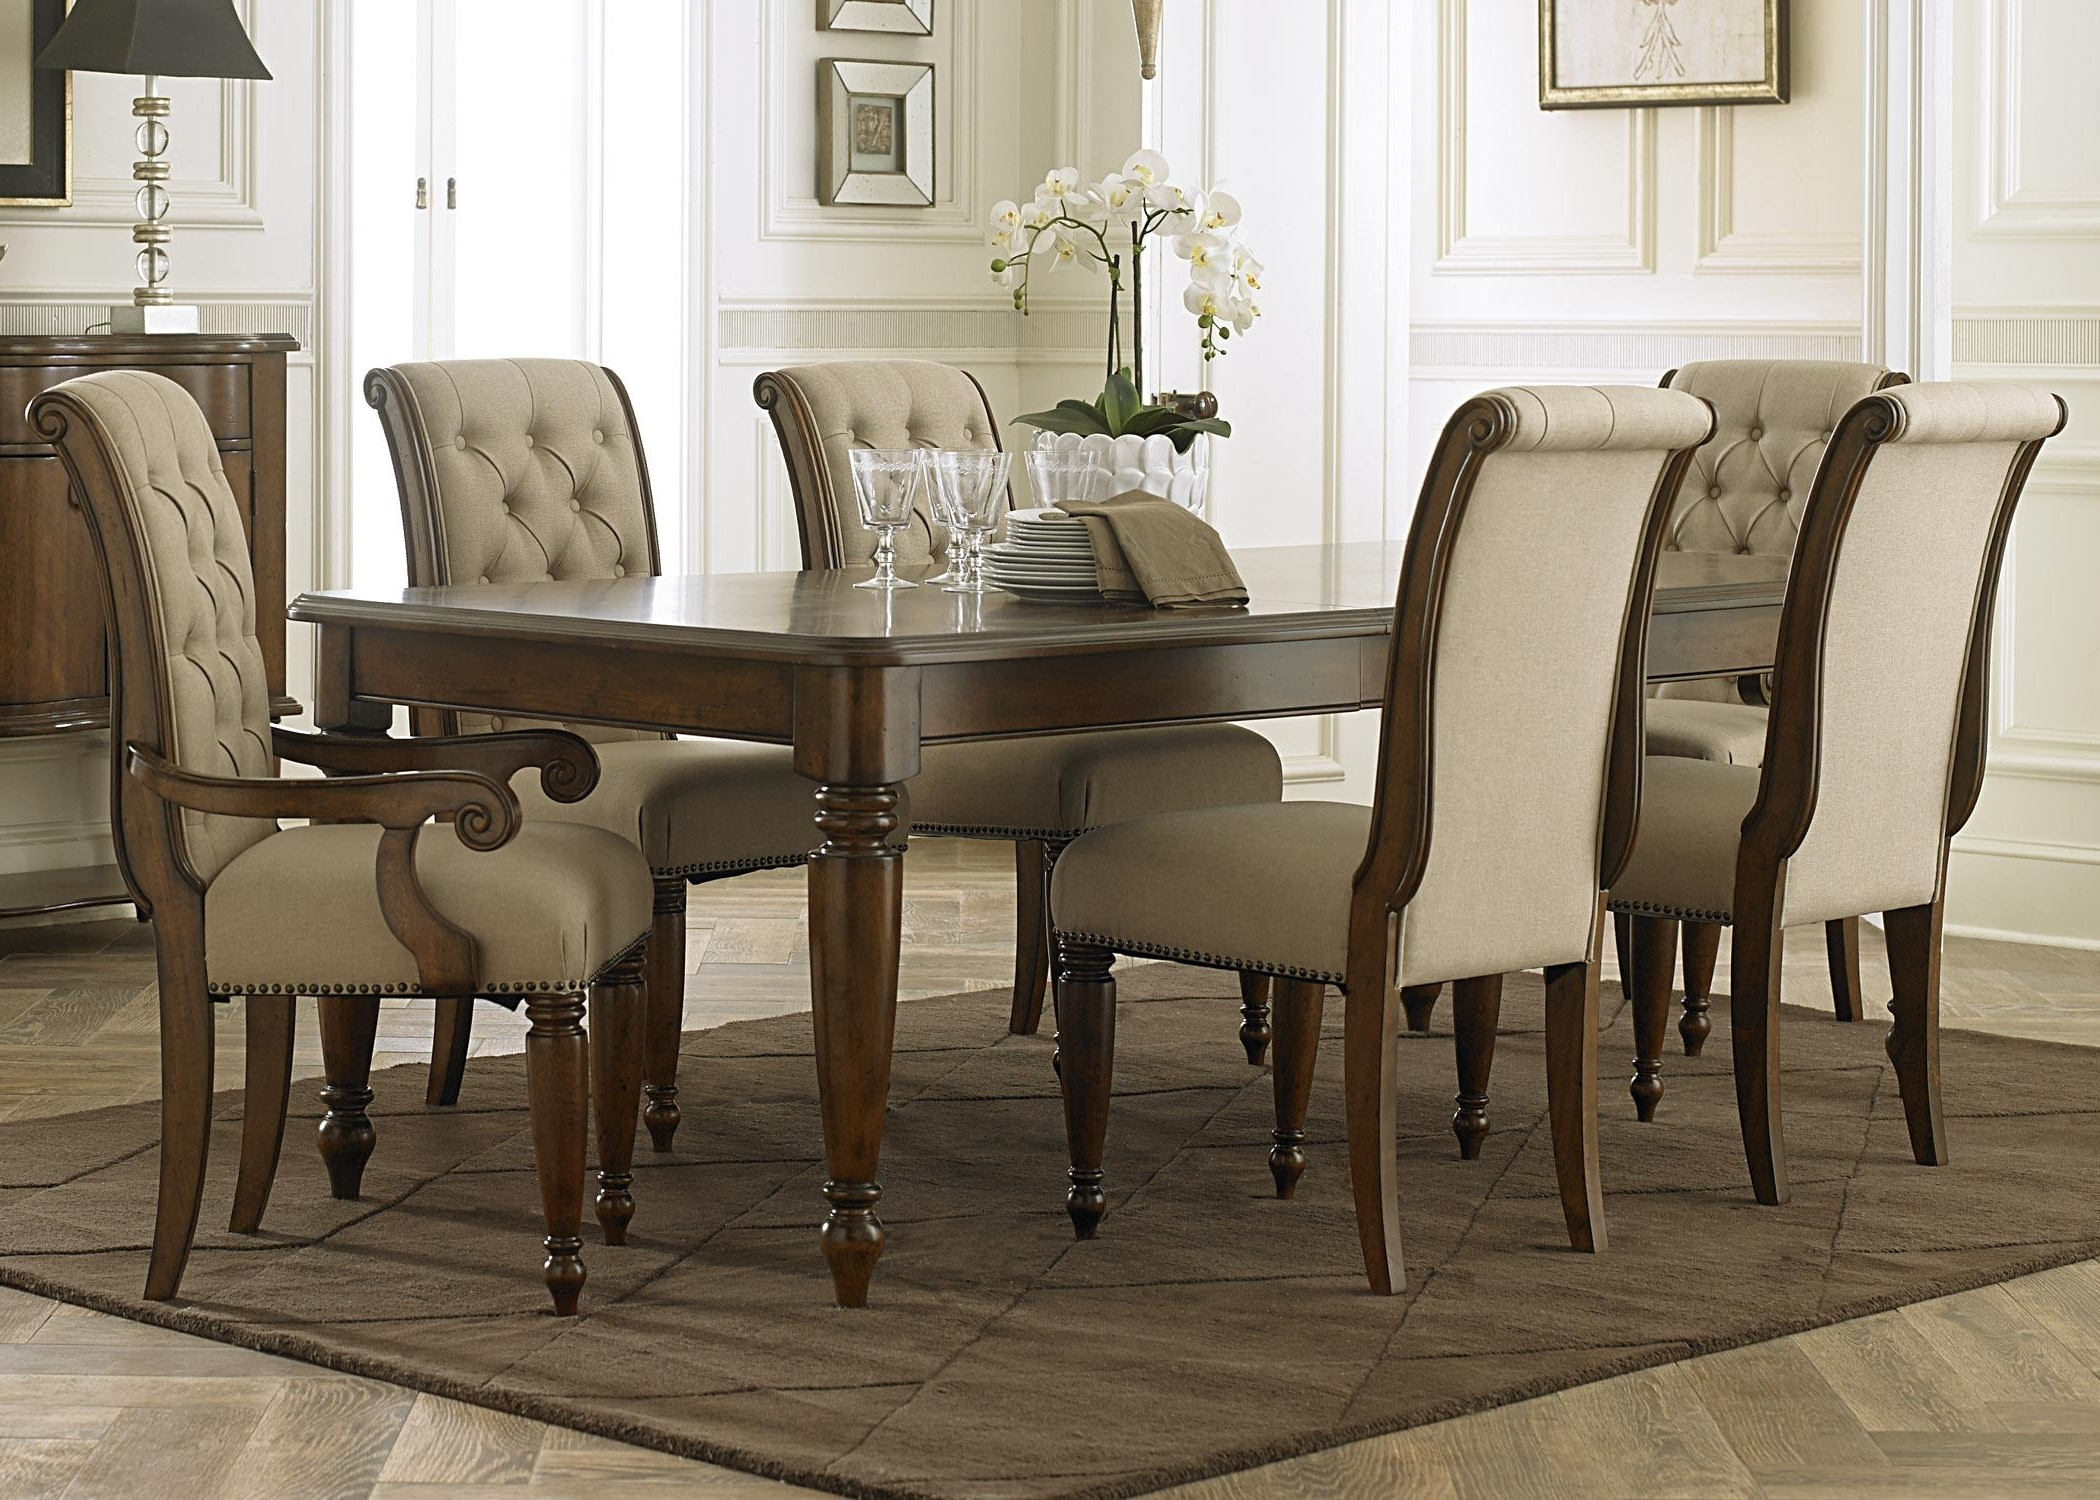 Widely Used Cotswold 7 Piece Rectangular Table Setliberty Furniture At Northeast Factory Direct With Cotswold Dining Tables (View 3 of 25)